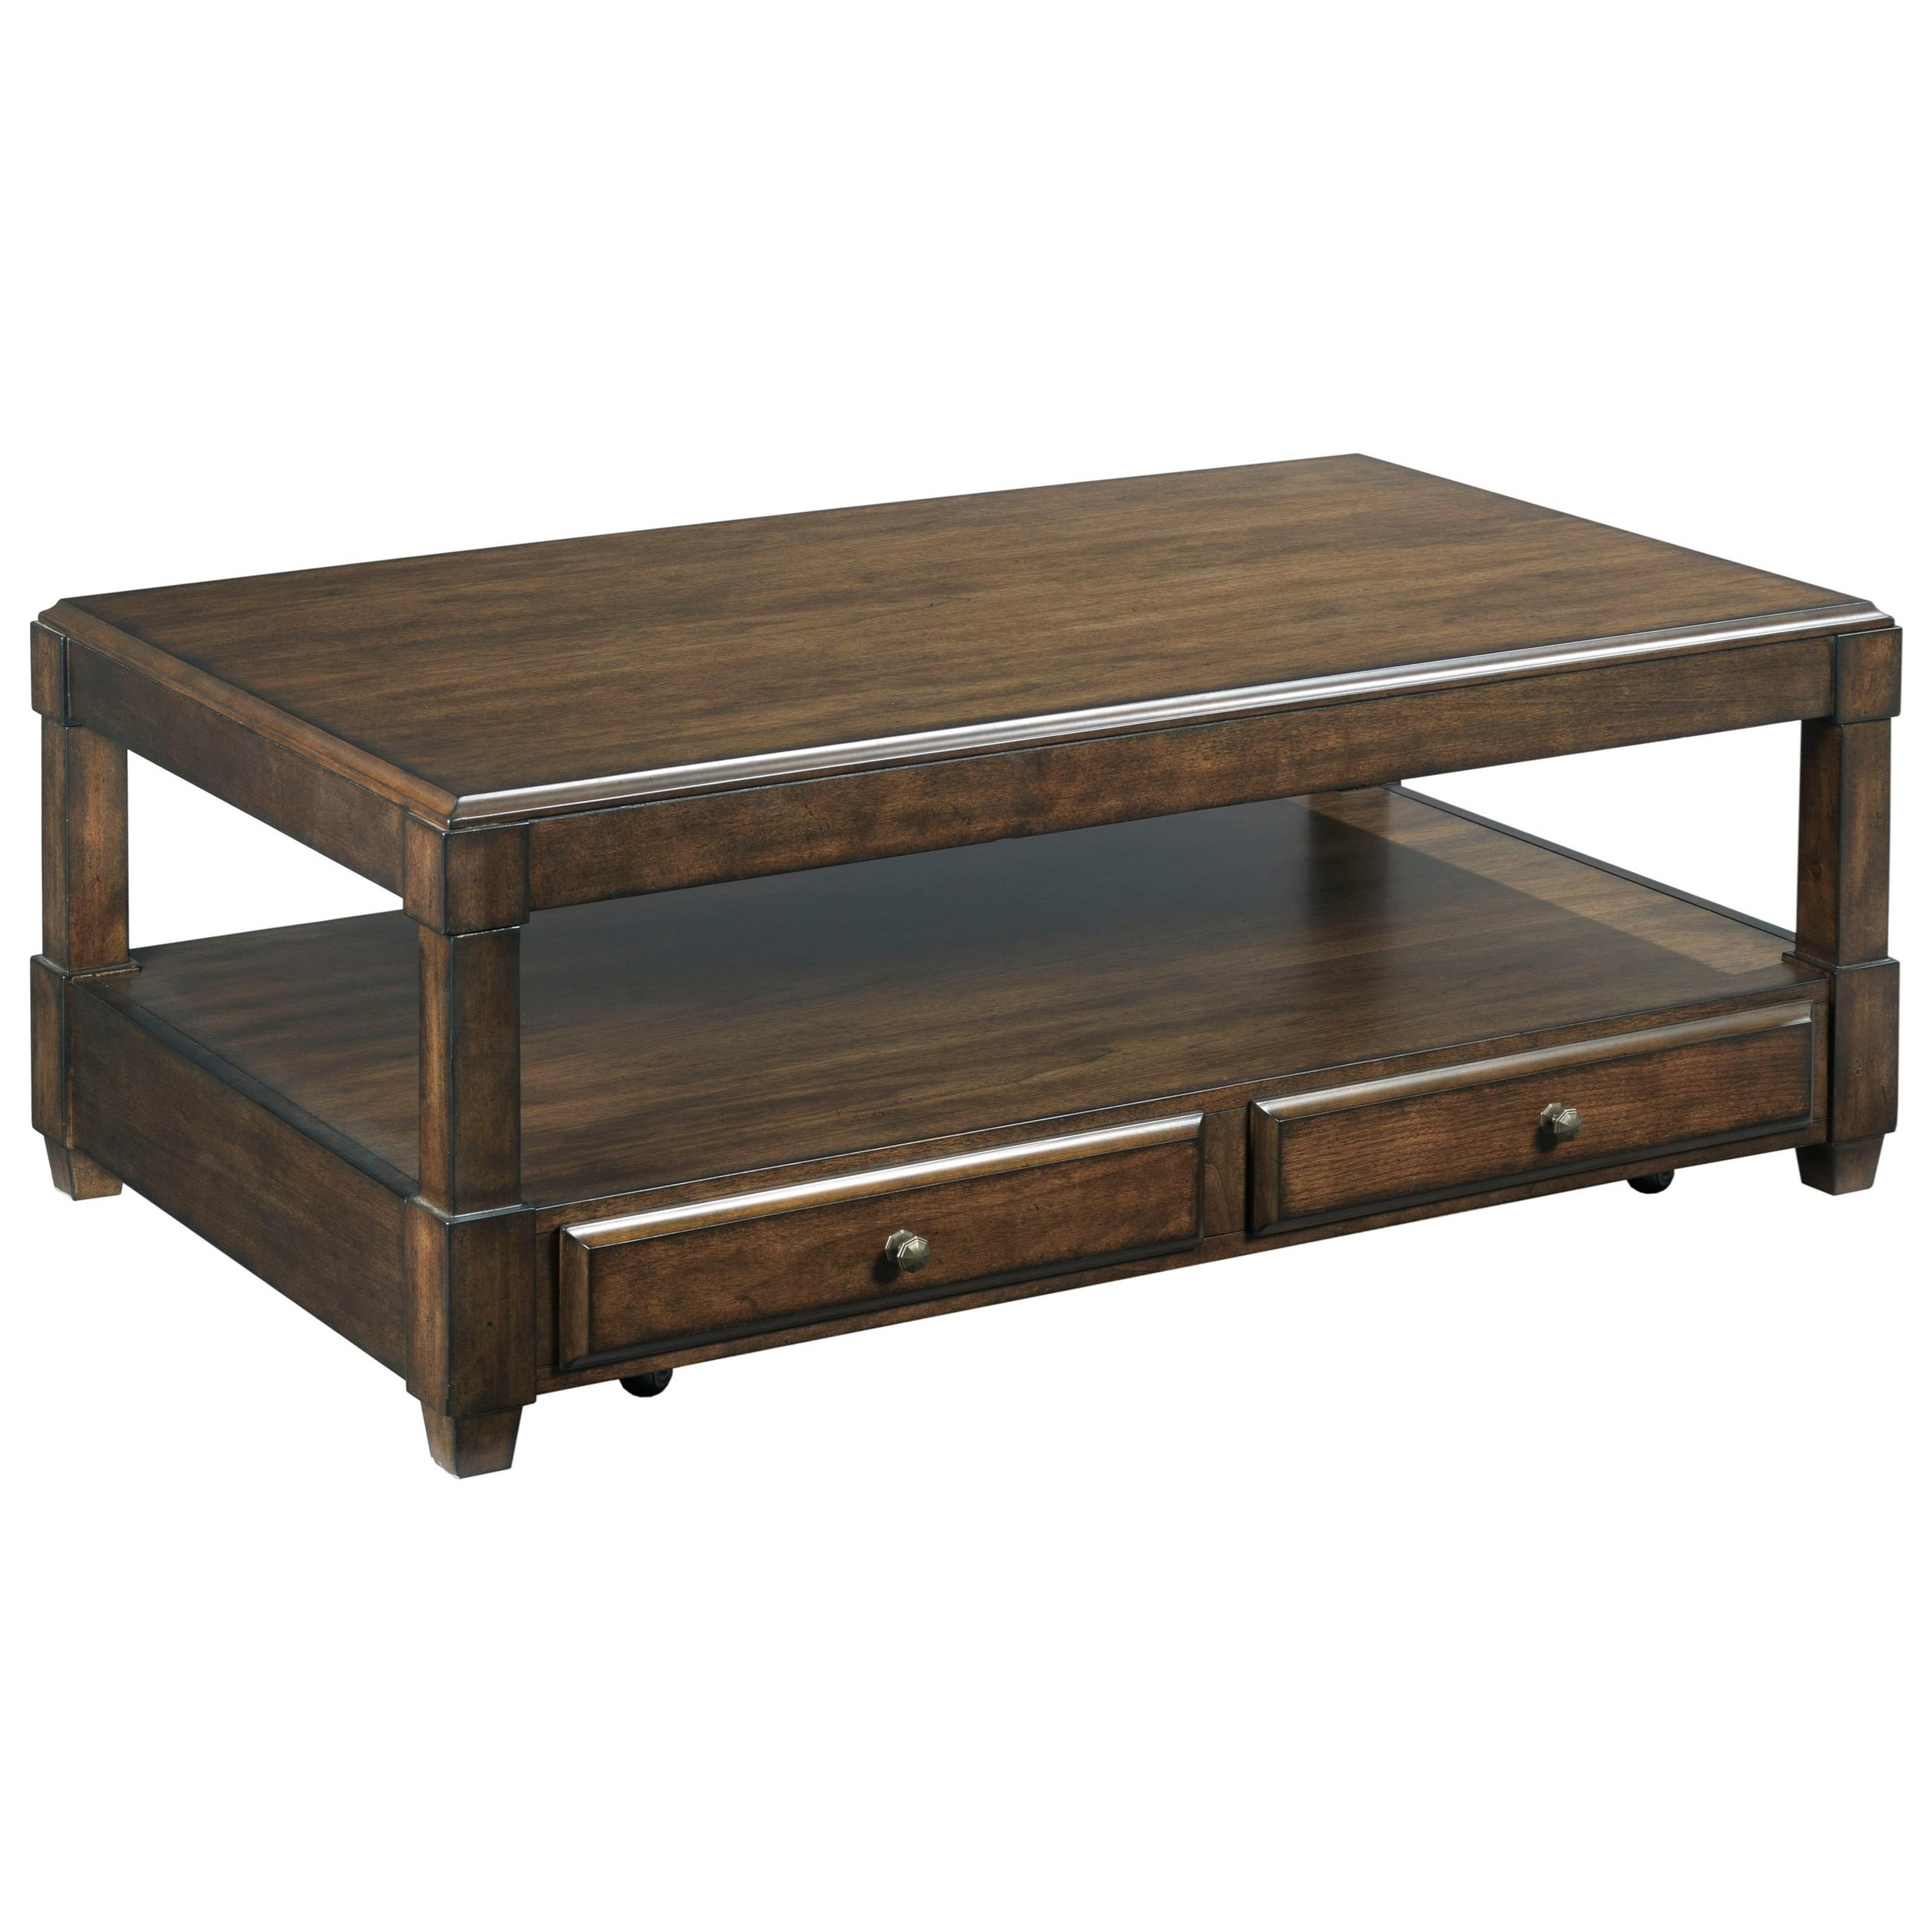 Halsey Rectangular Lift-Top Cocktail Table by Hammary at Johnny Janosik